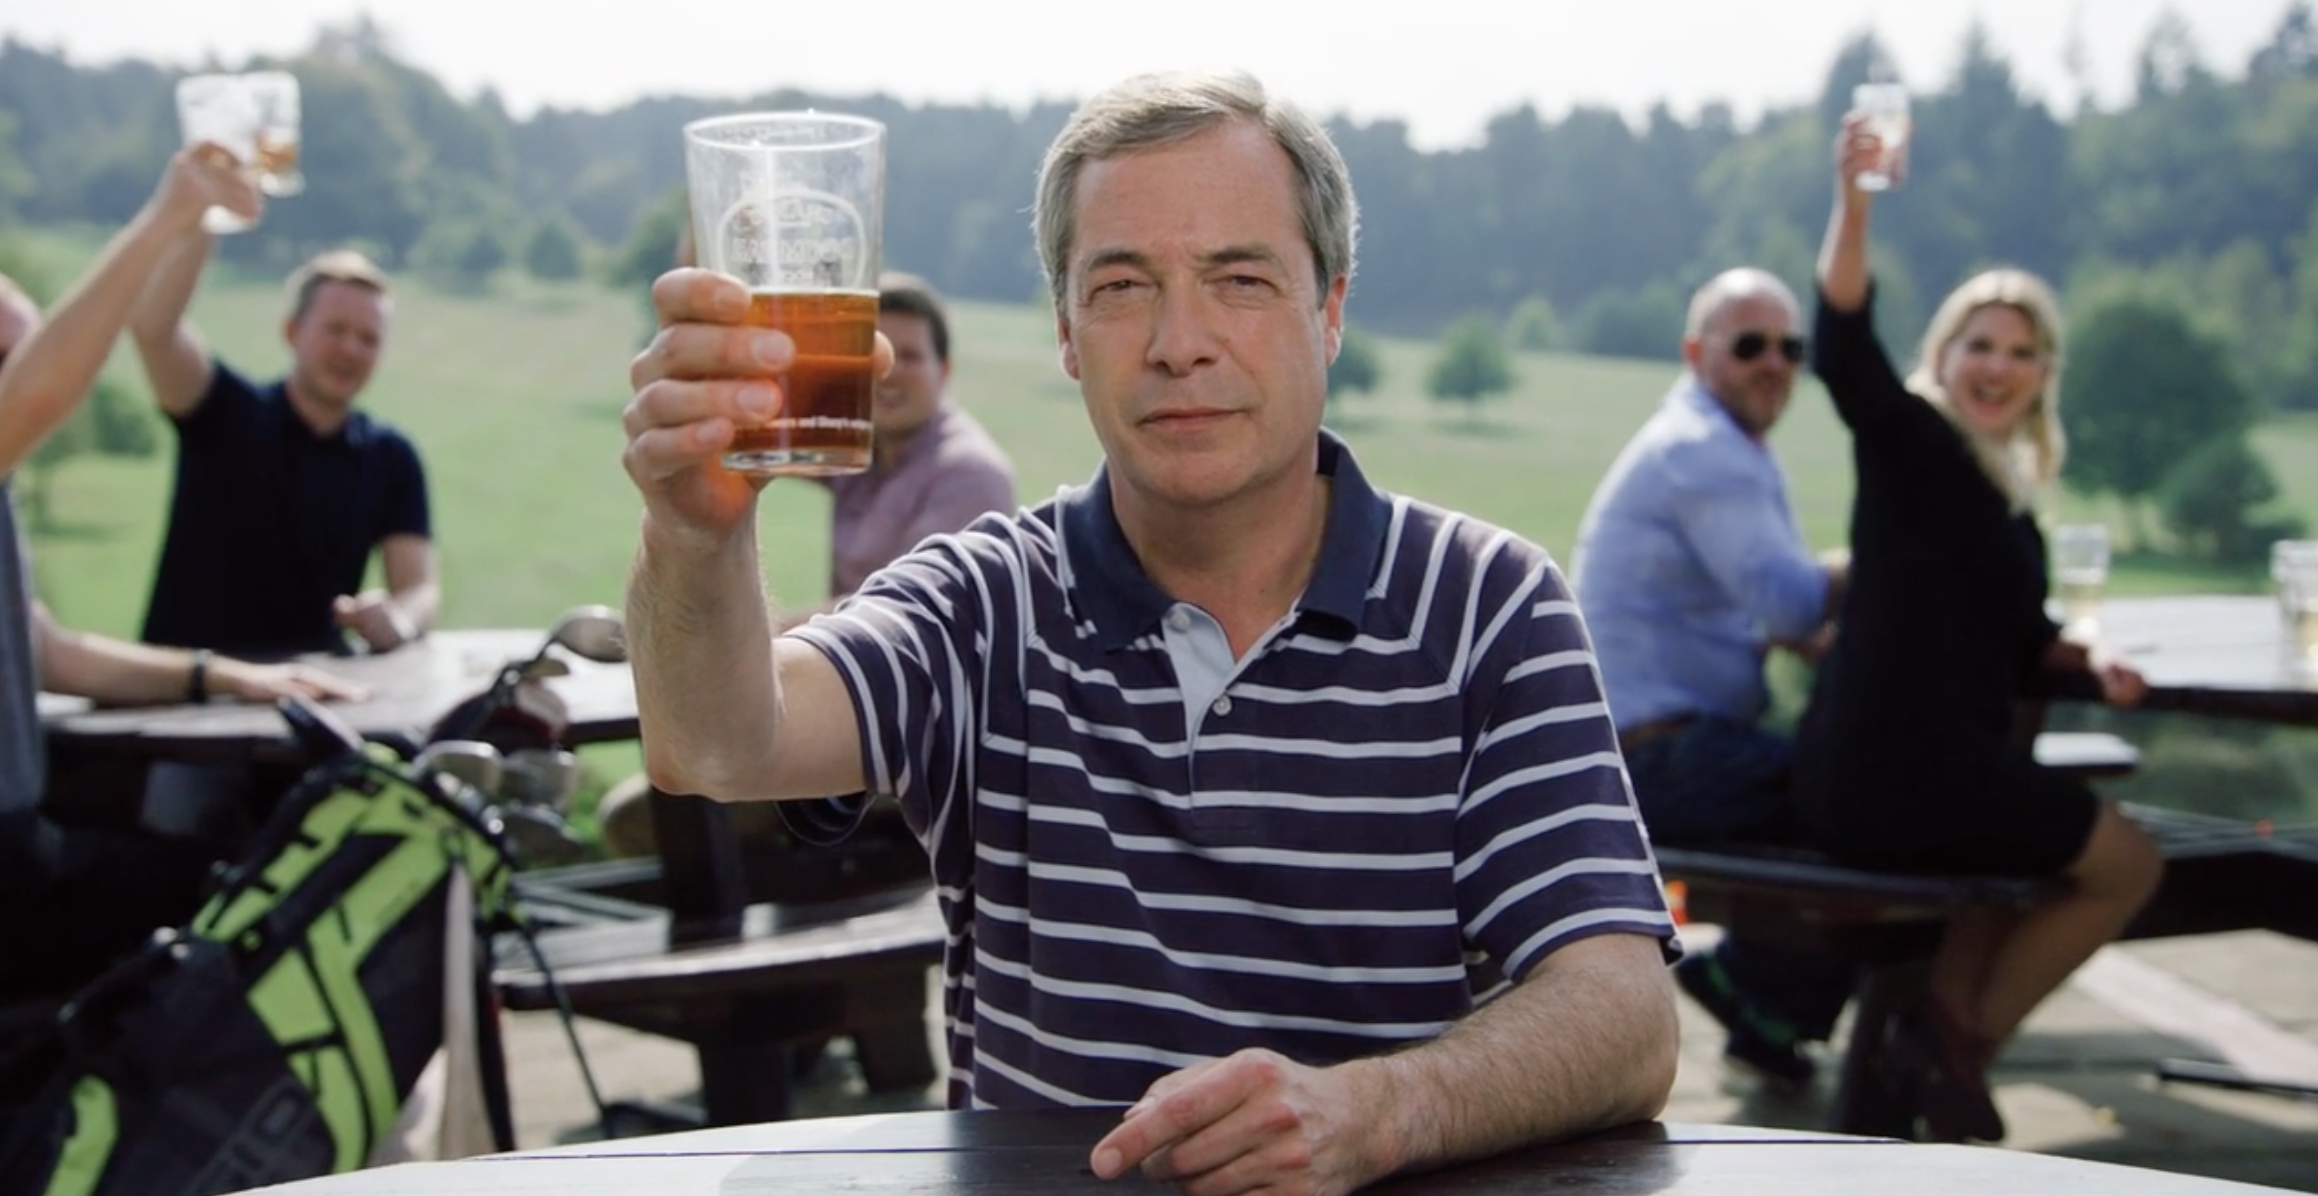 WATCH: Nigel Farage's New Paddy Power #RyderCup Commercial #UKIP